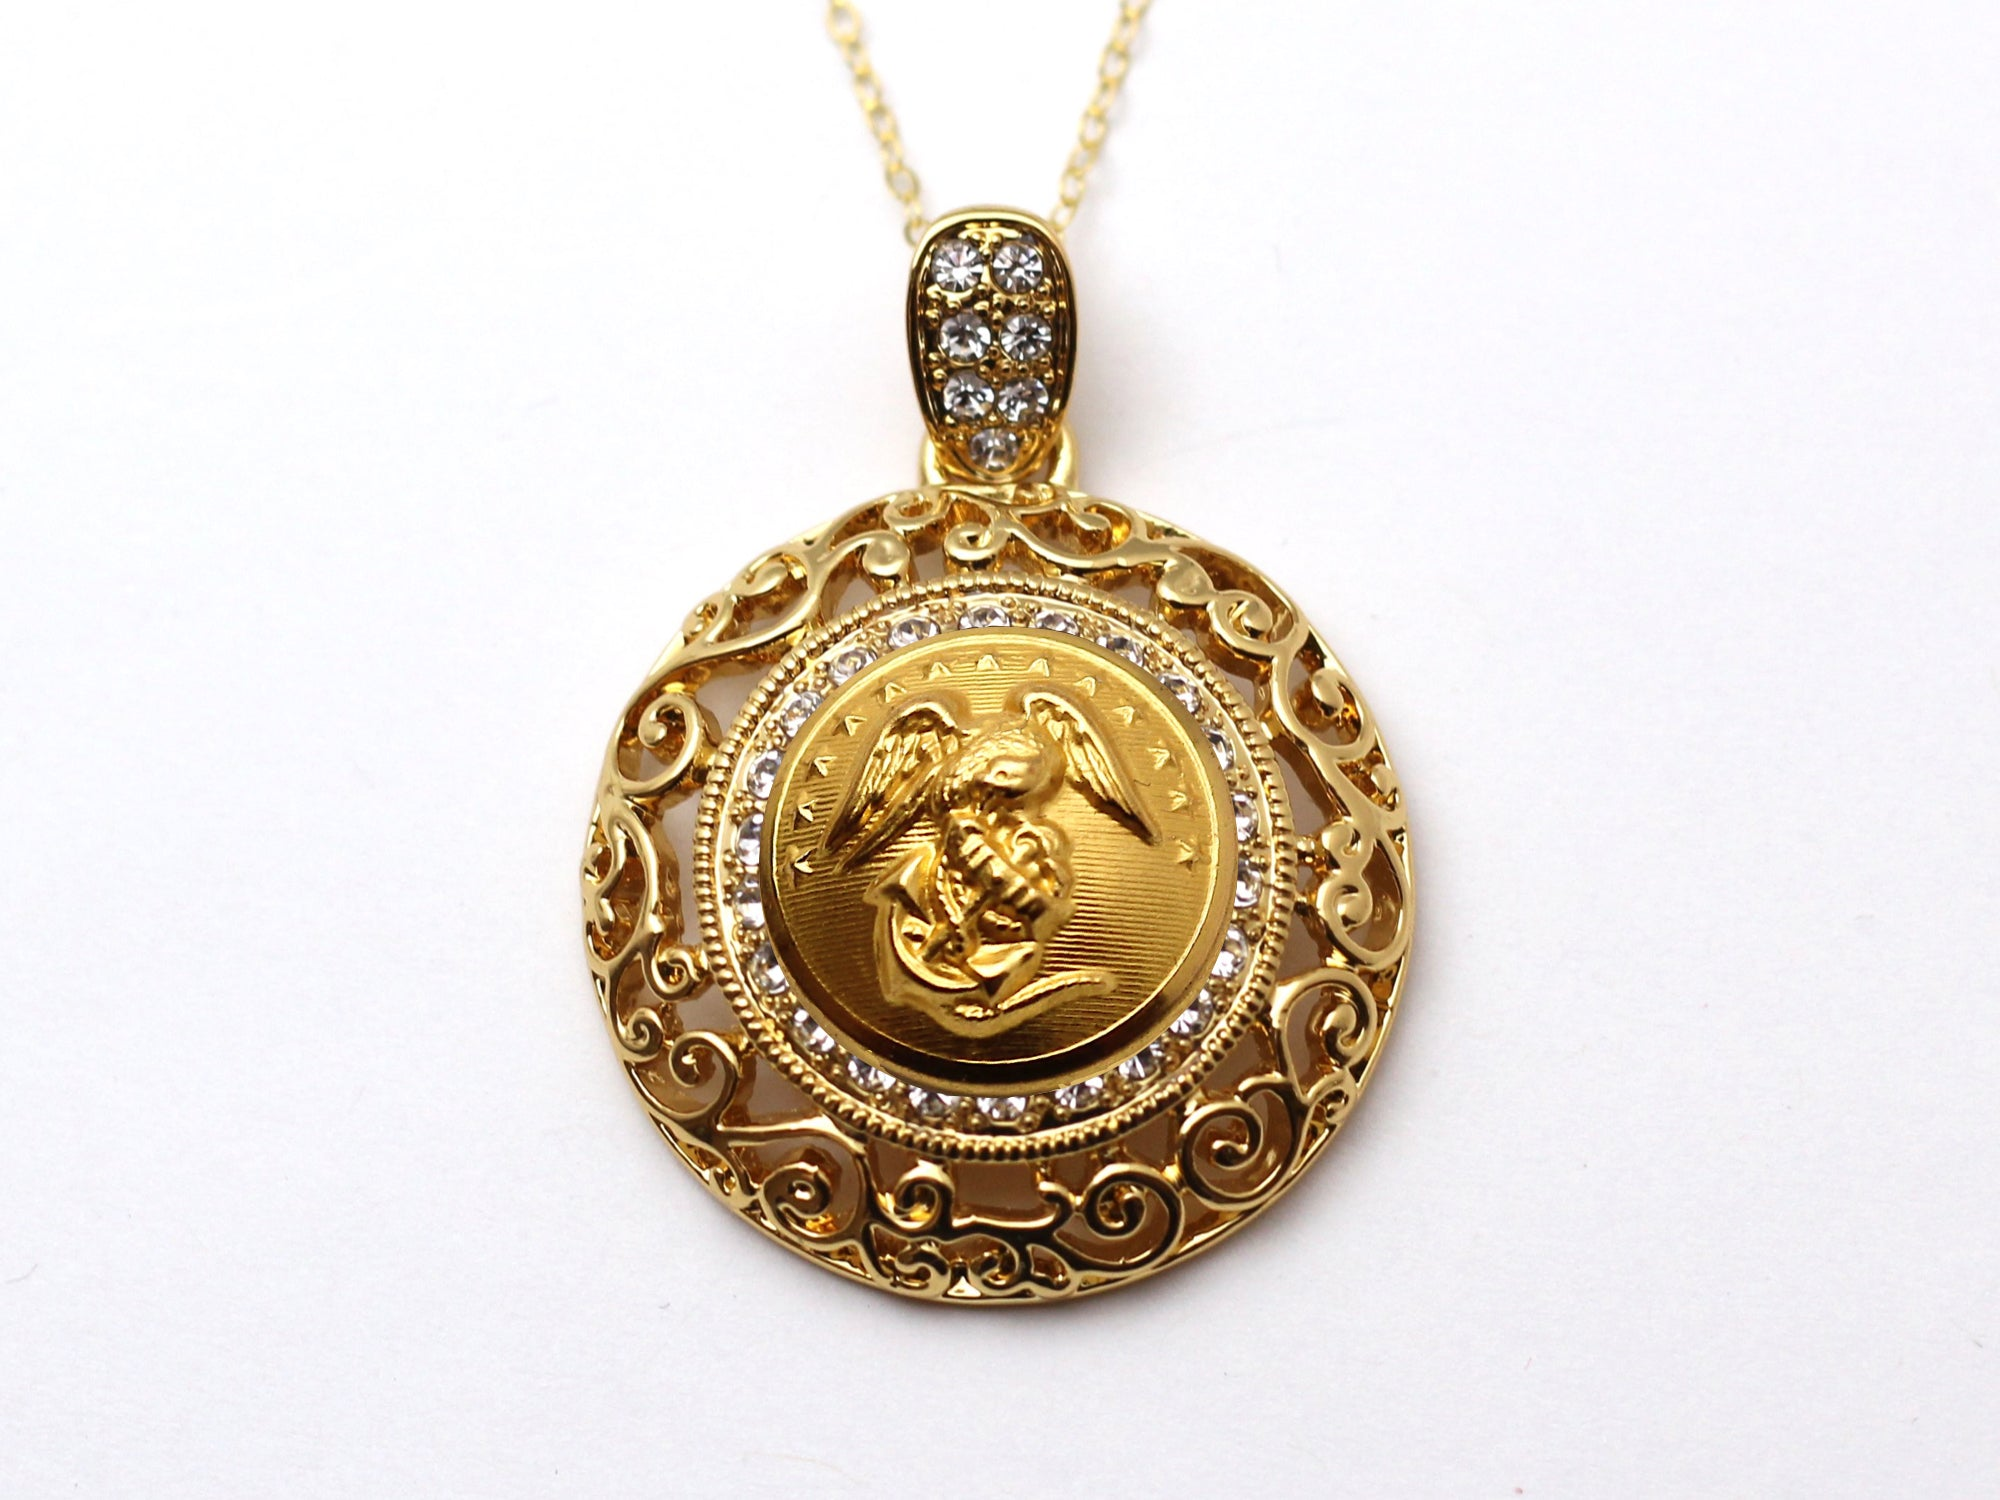 Marine Button Necklace - Large Gold Rhinestone Pendant